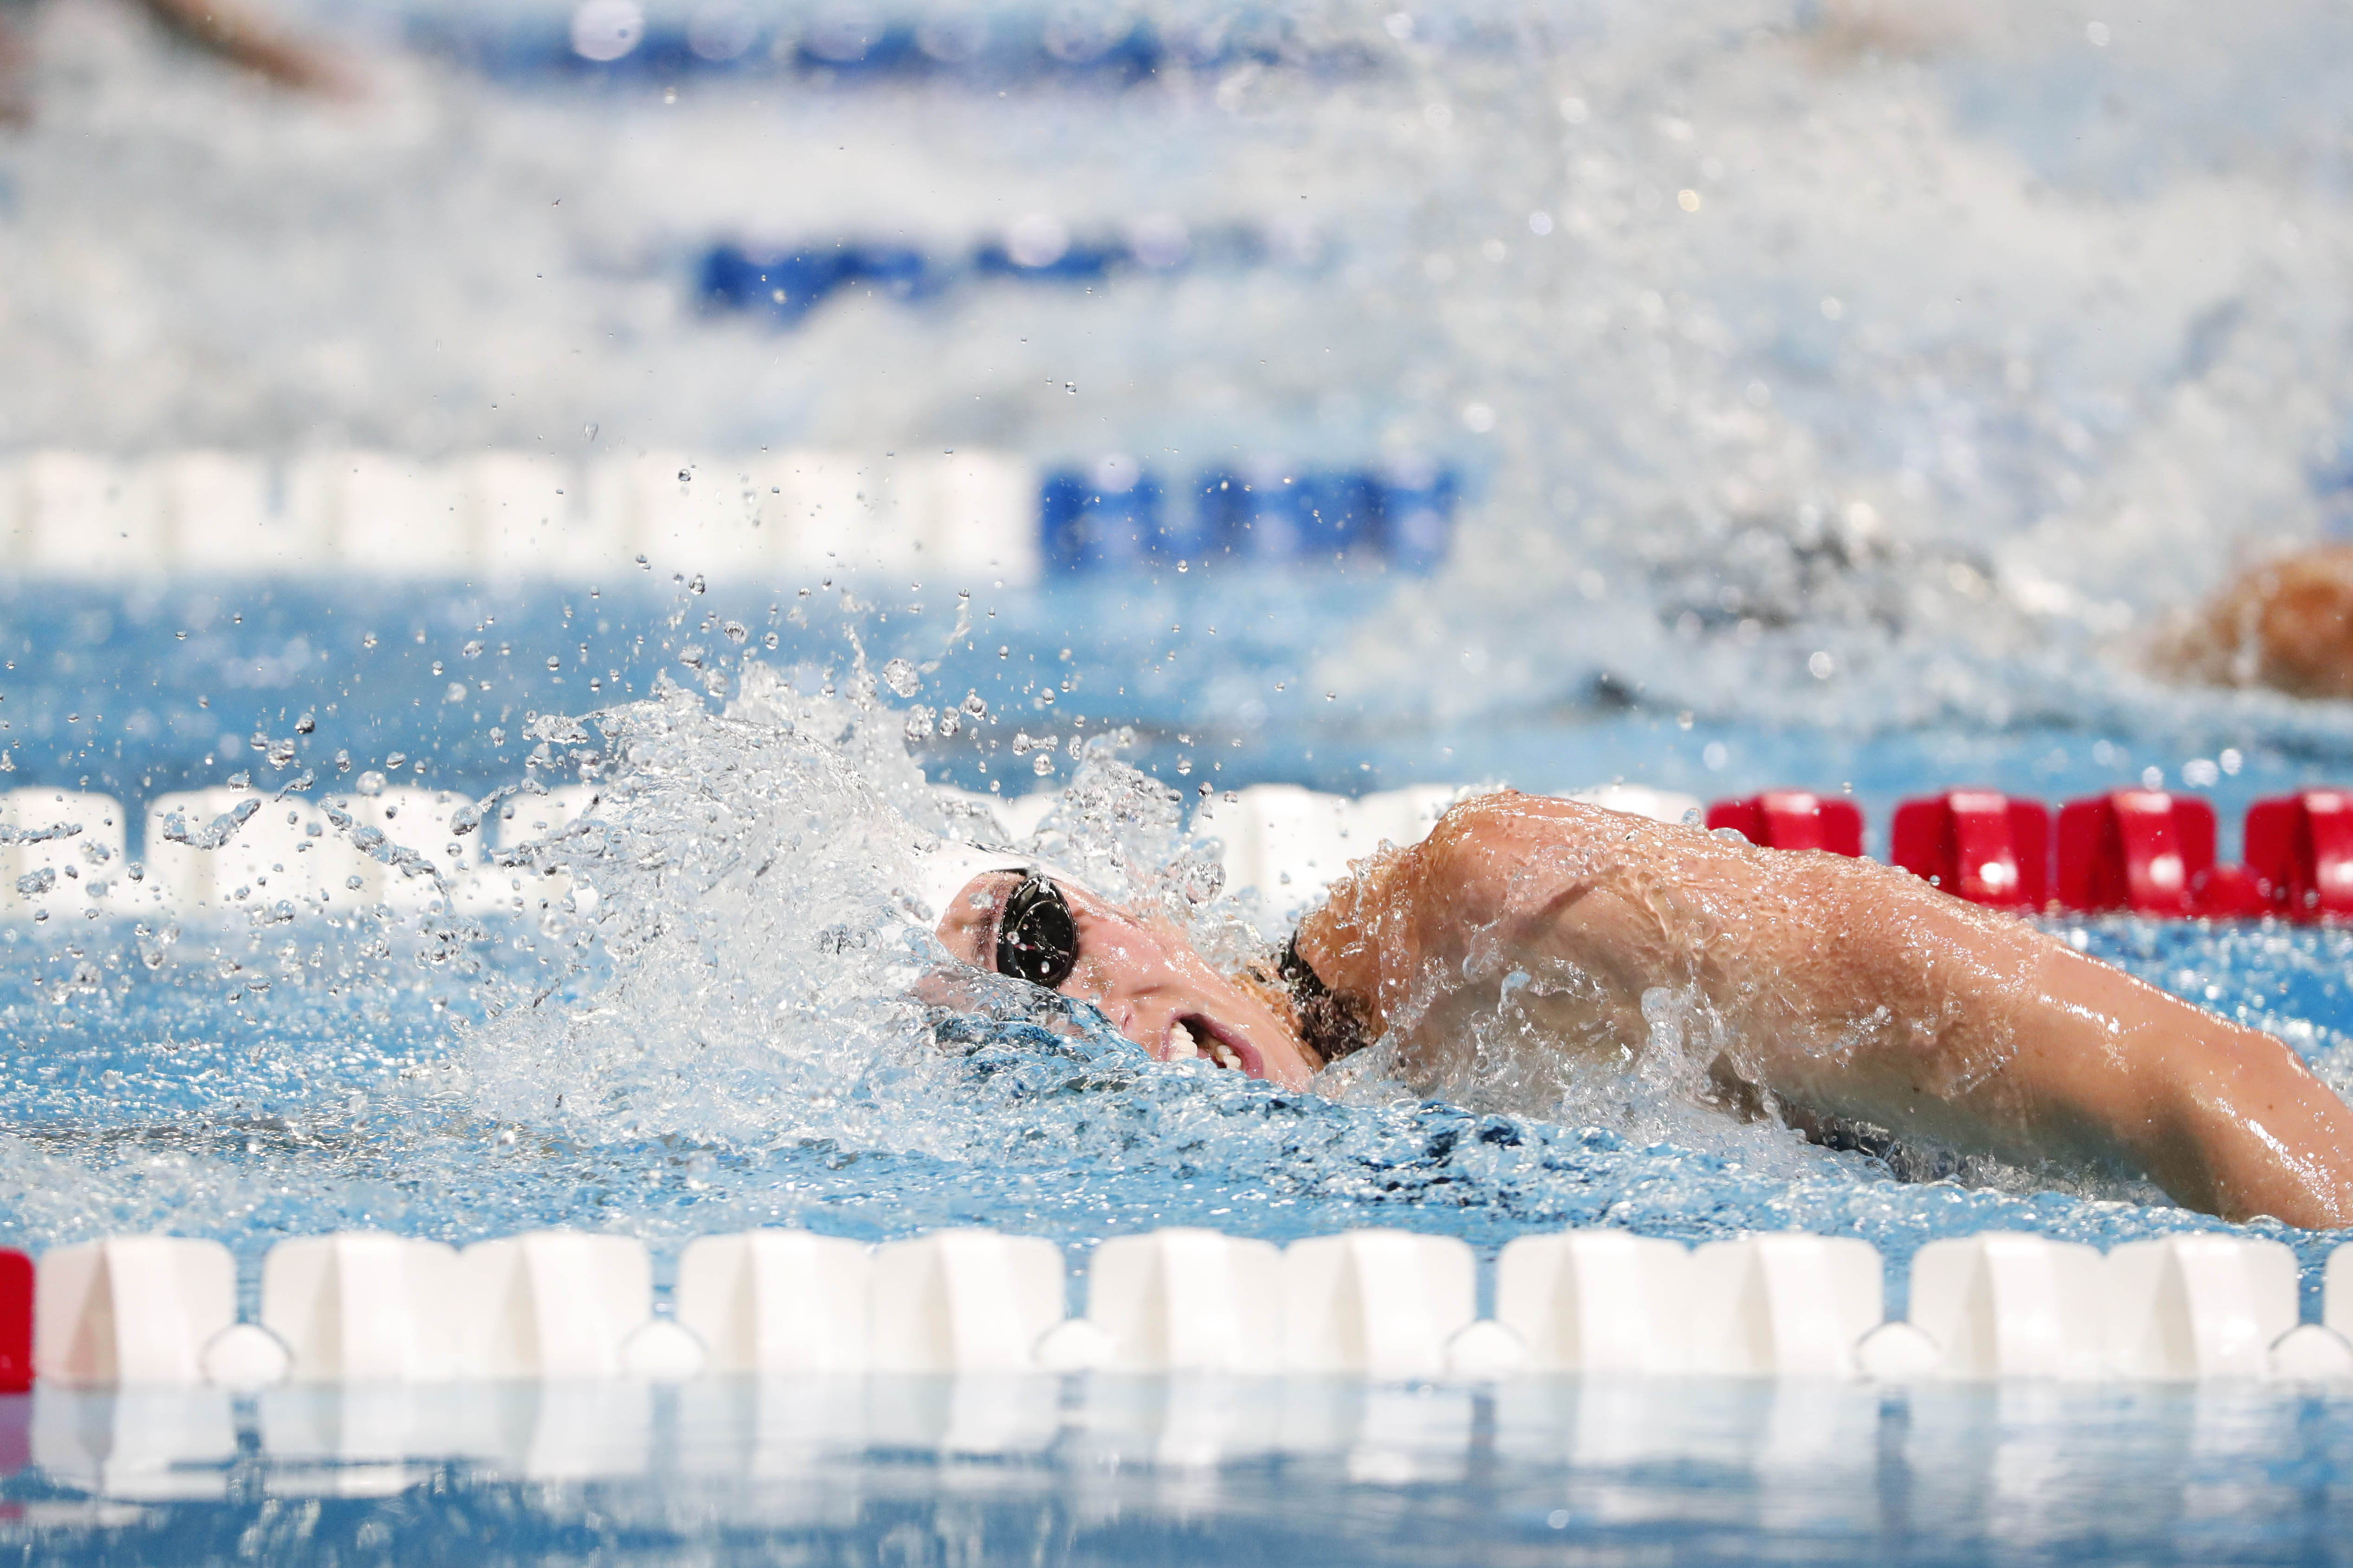 Olympics swimming trials 2016 live stream: How to watch Team USA tryouts online